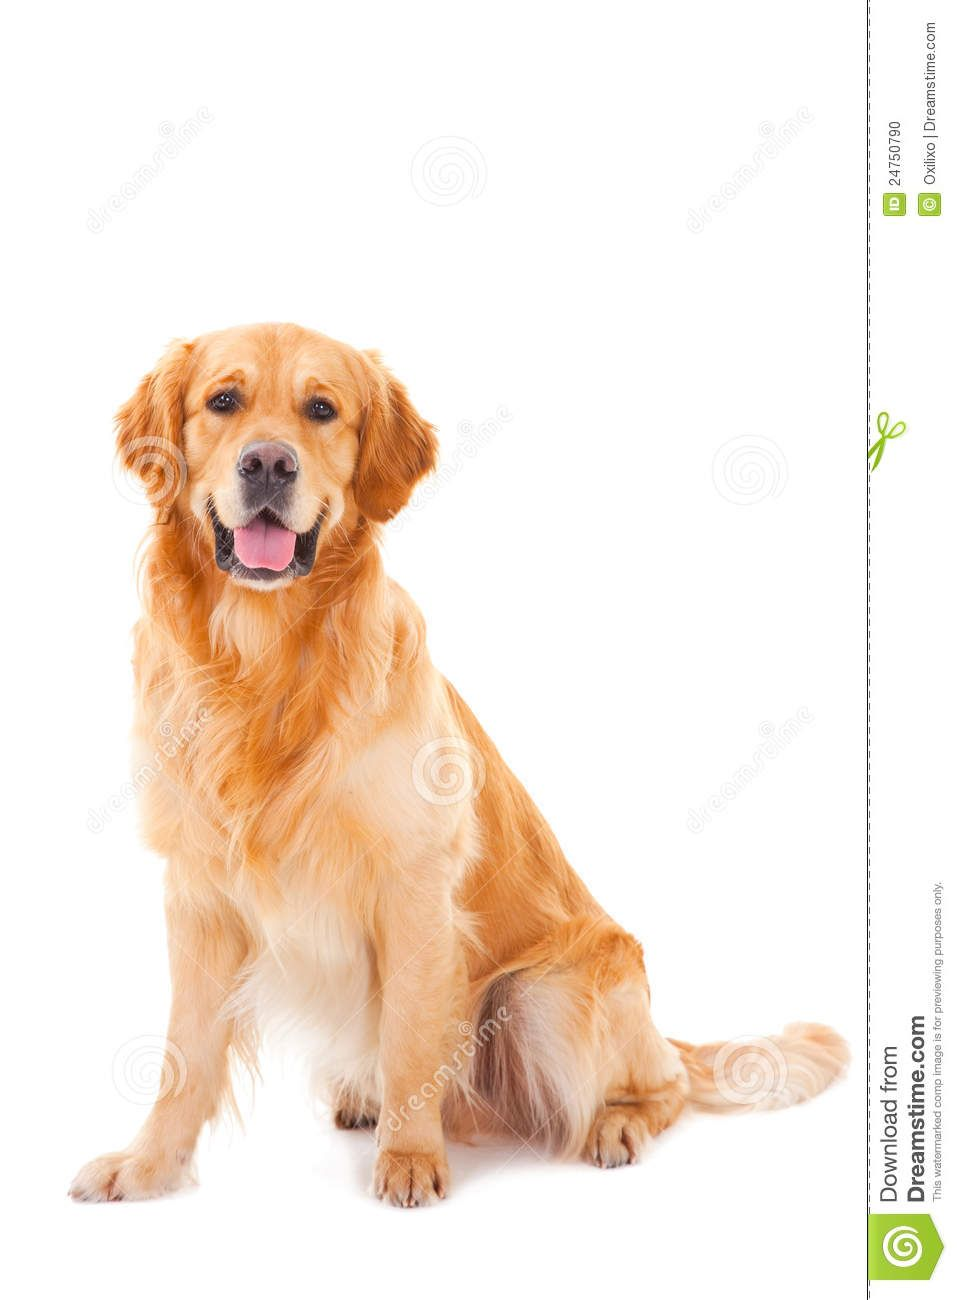 Golden Retriever Dog Sitting On White Download From Over 54